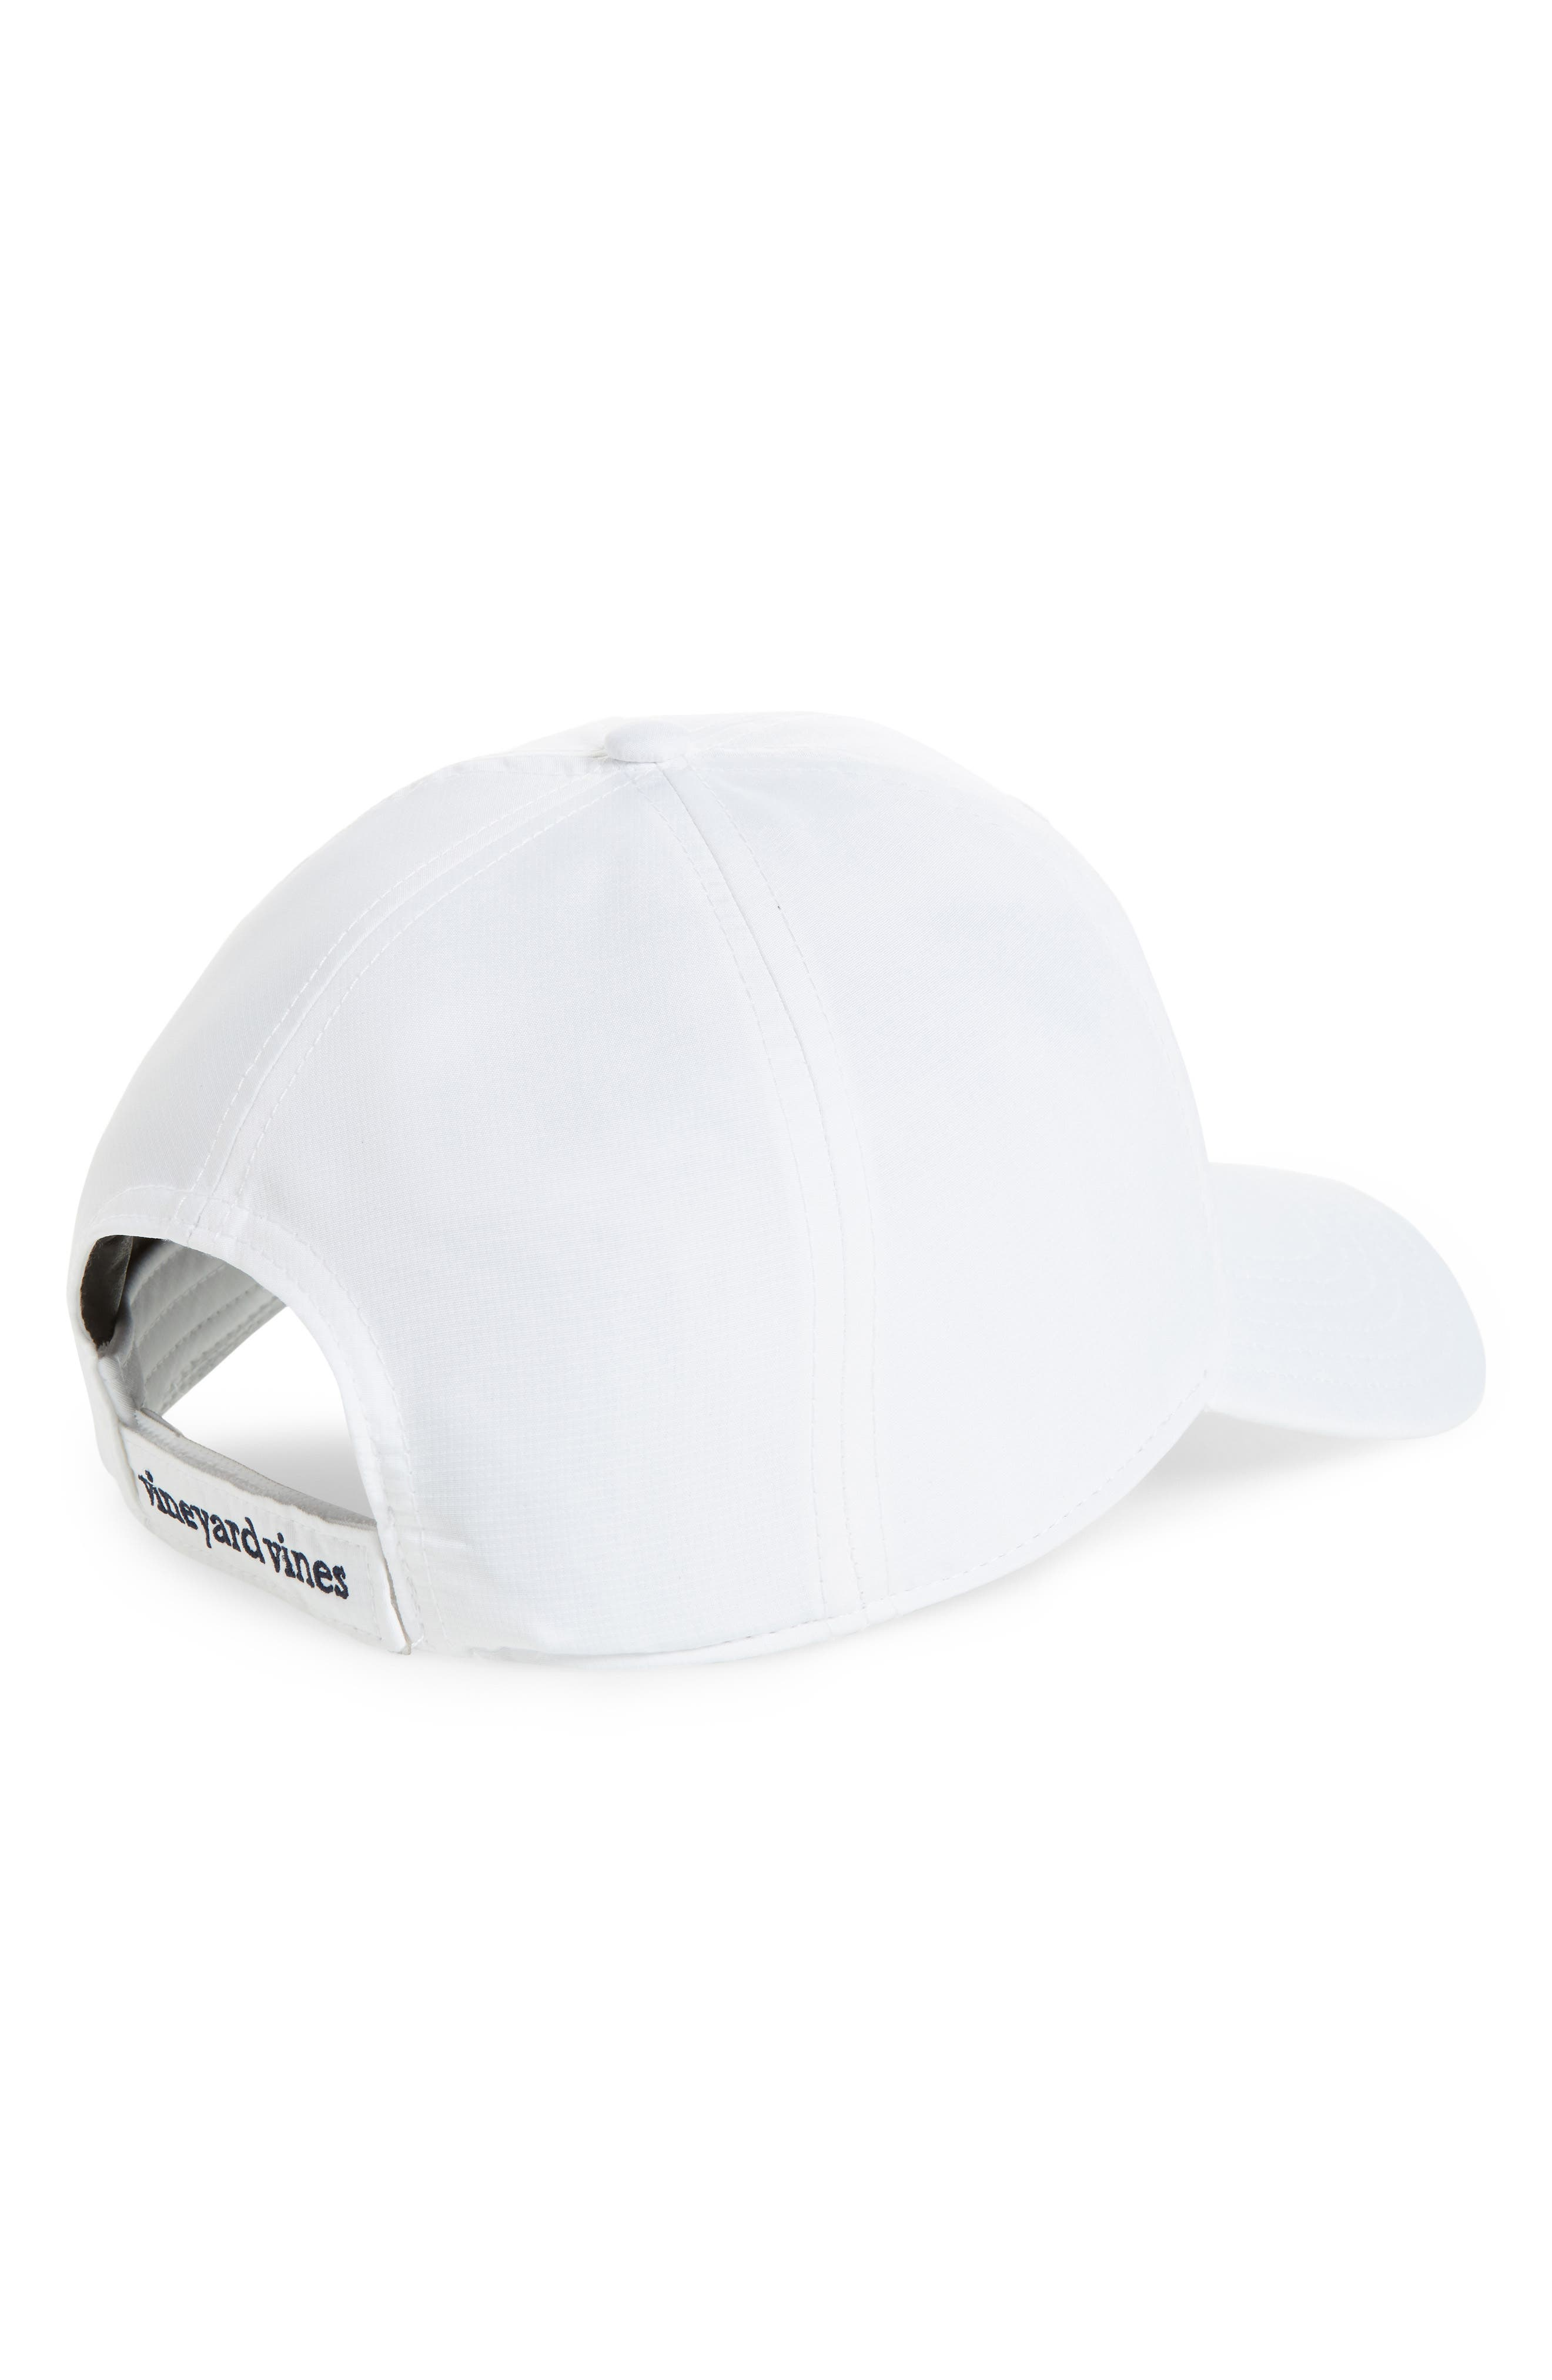 Perf Classic Woven Whale Ball Cap,                             Alternate thumbnail 2, color,                             100